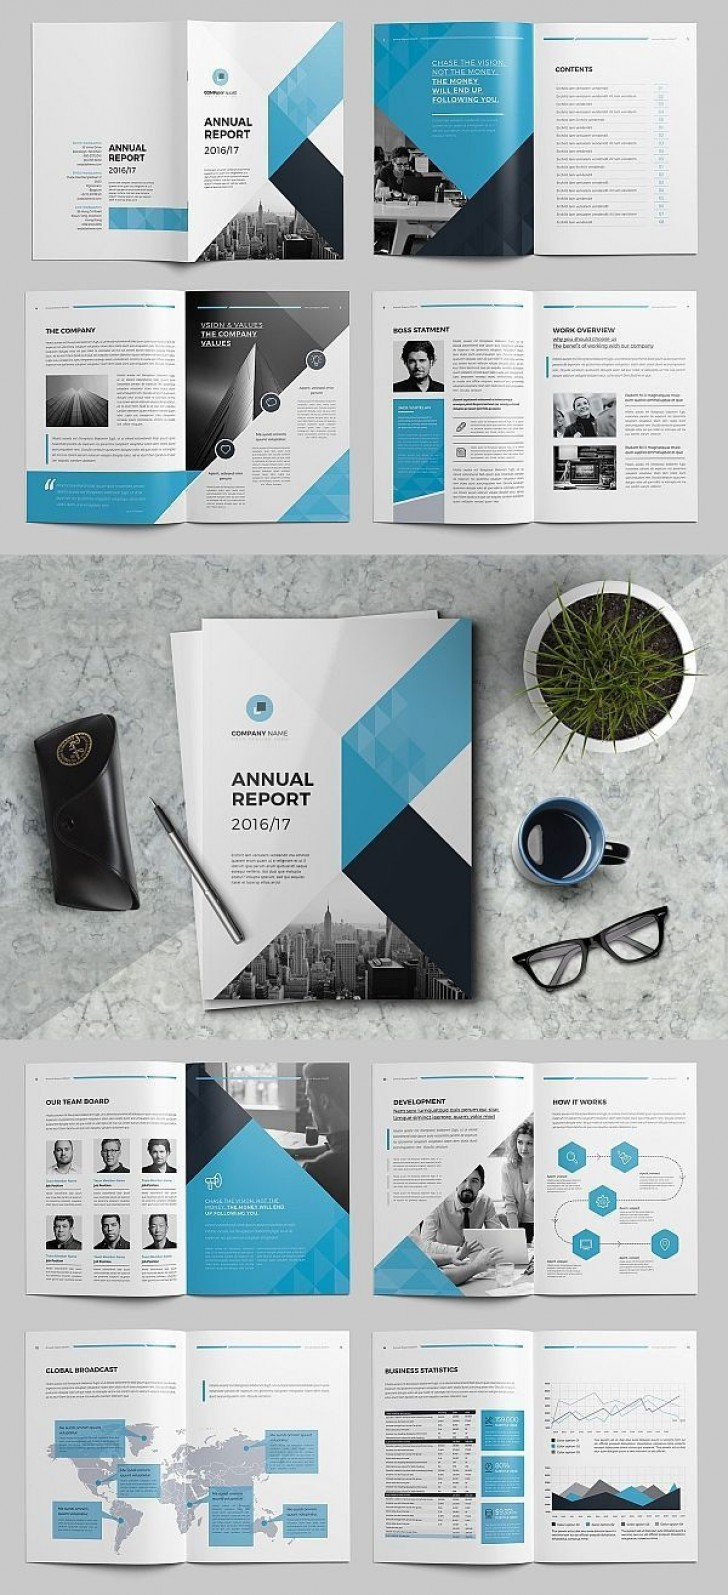 008 Fascinating Annual Report Design Template Indesign Photo  Free Download728